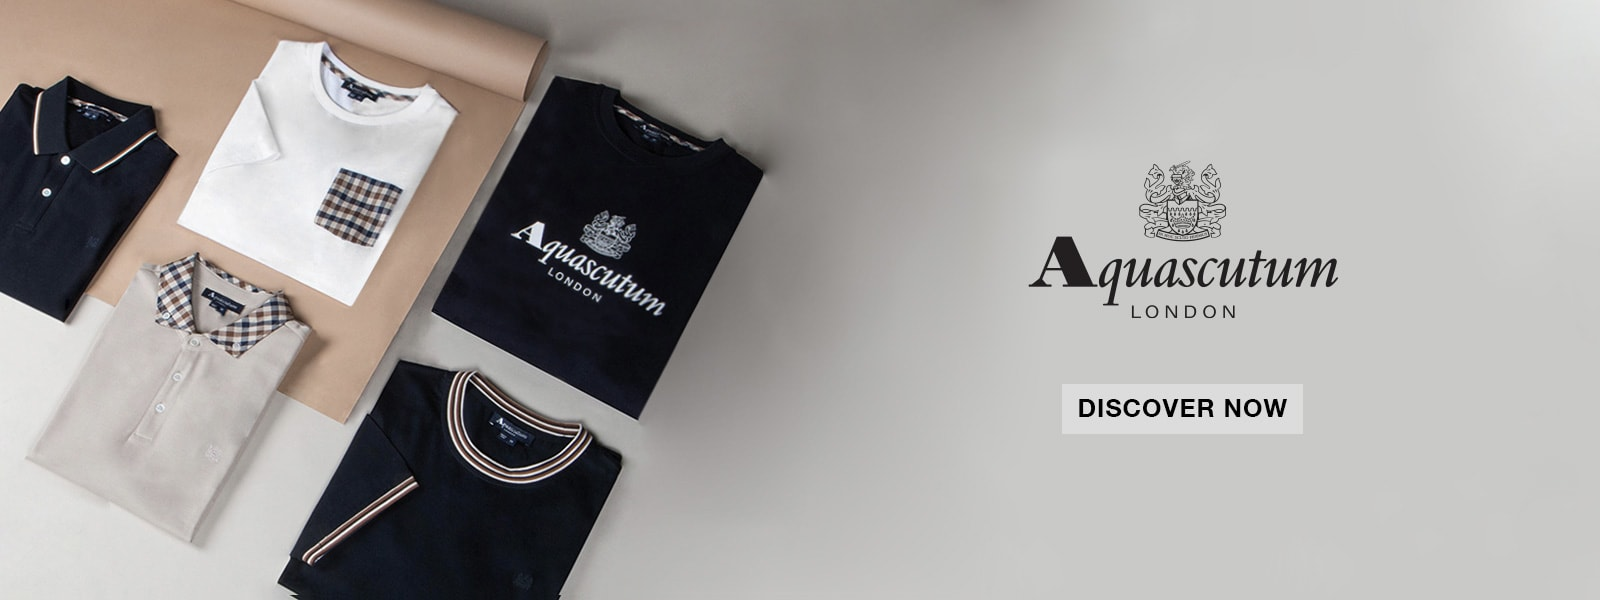 Aquascutum London - Discover Now